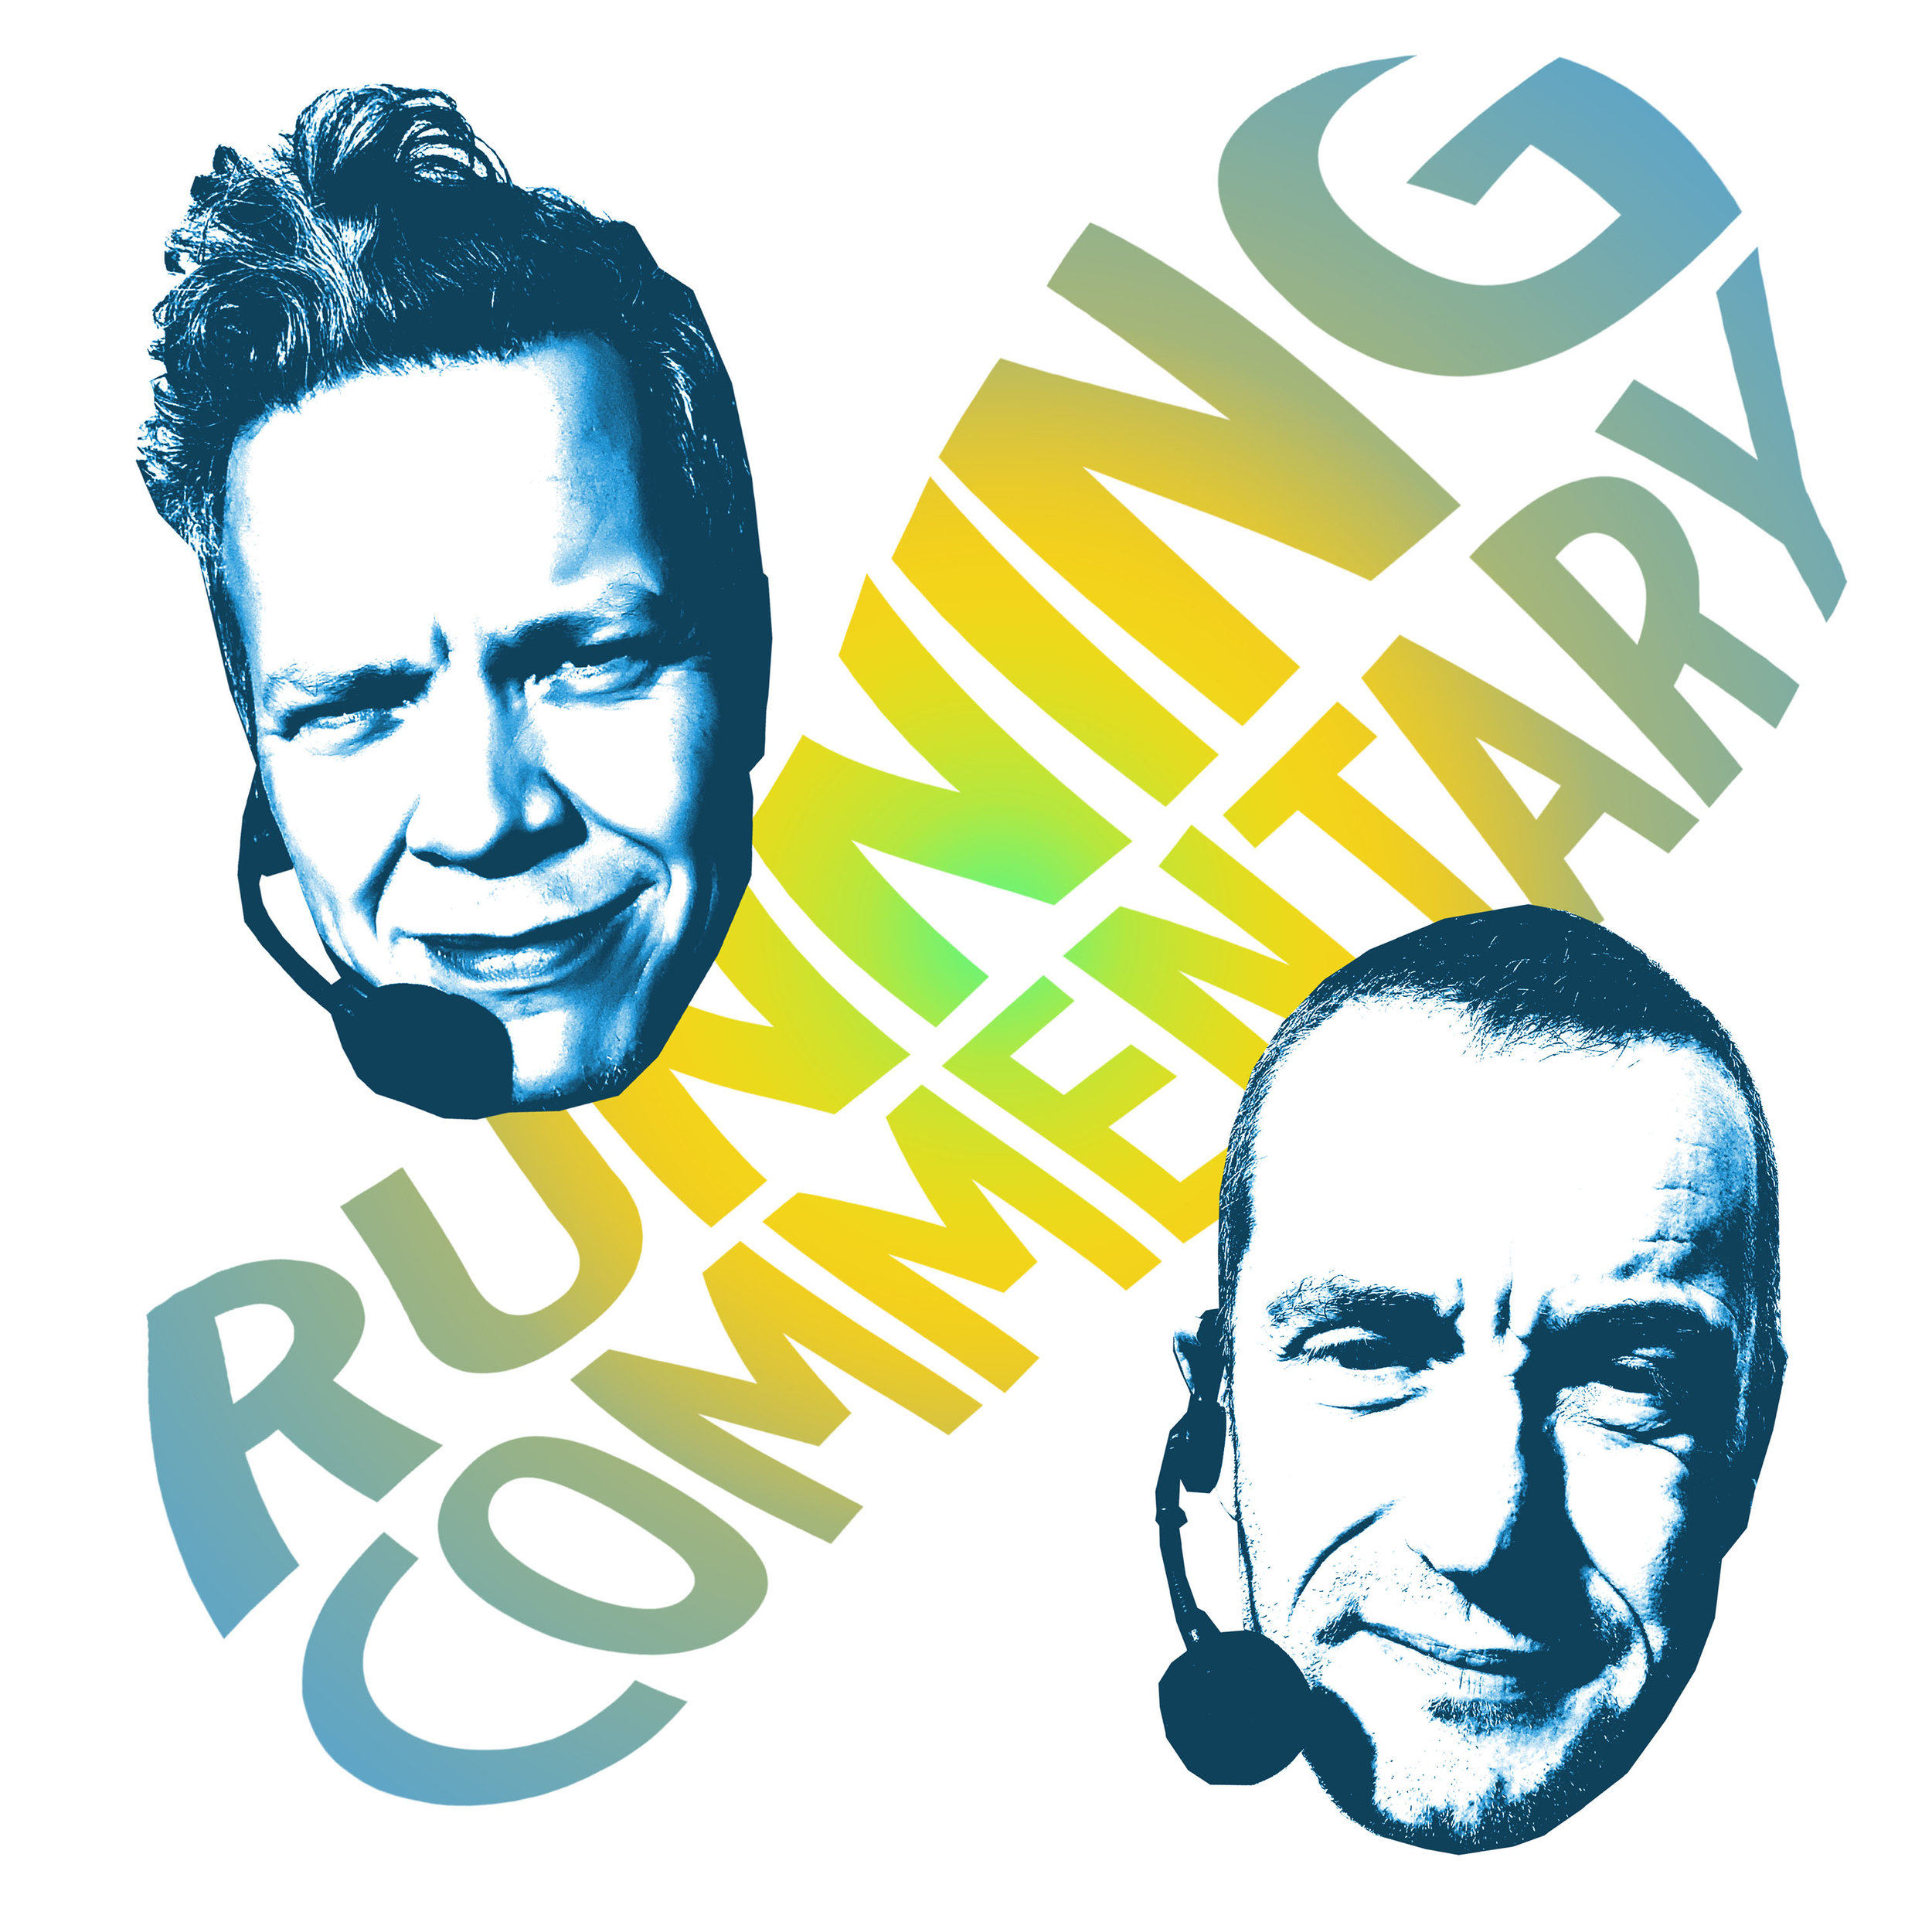 A+Running+Commentary+Podcast+Impact+Marathon+Nick+Kershaw